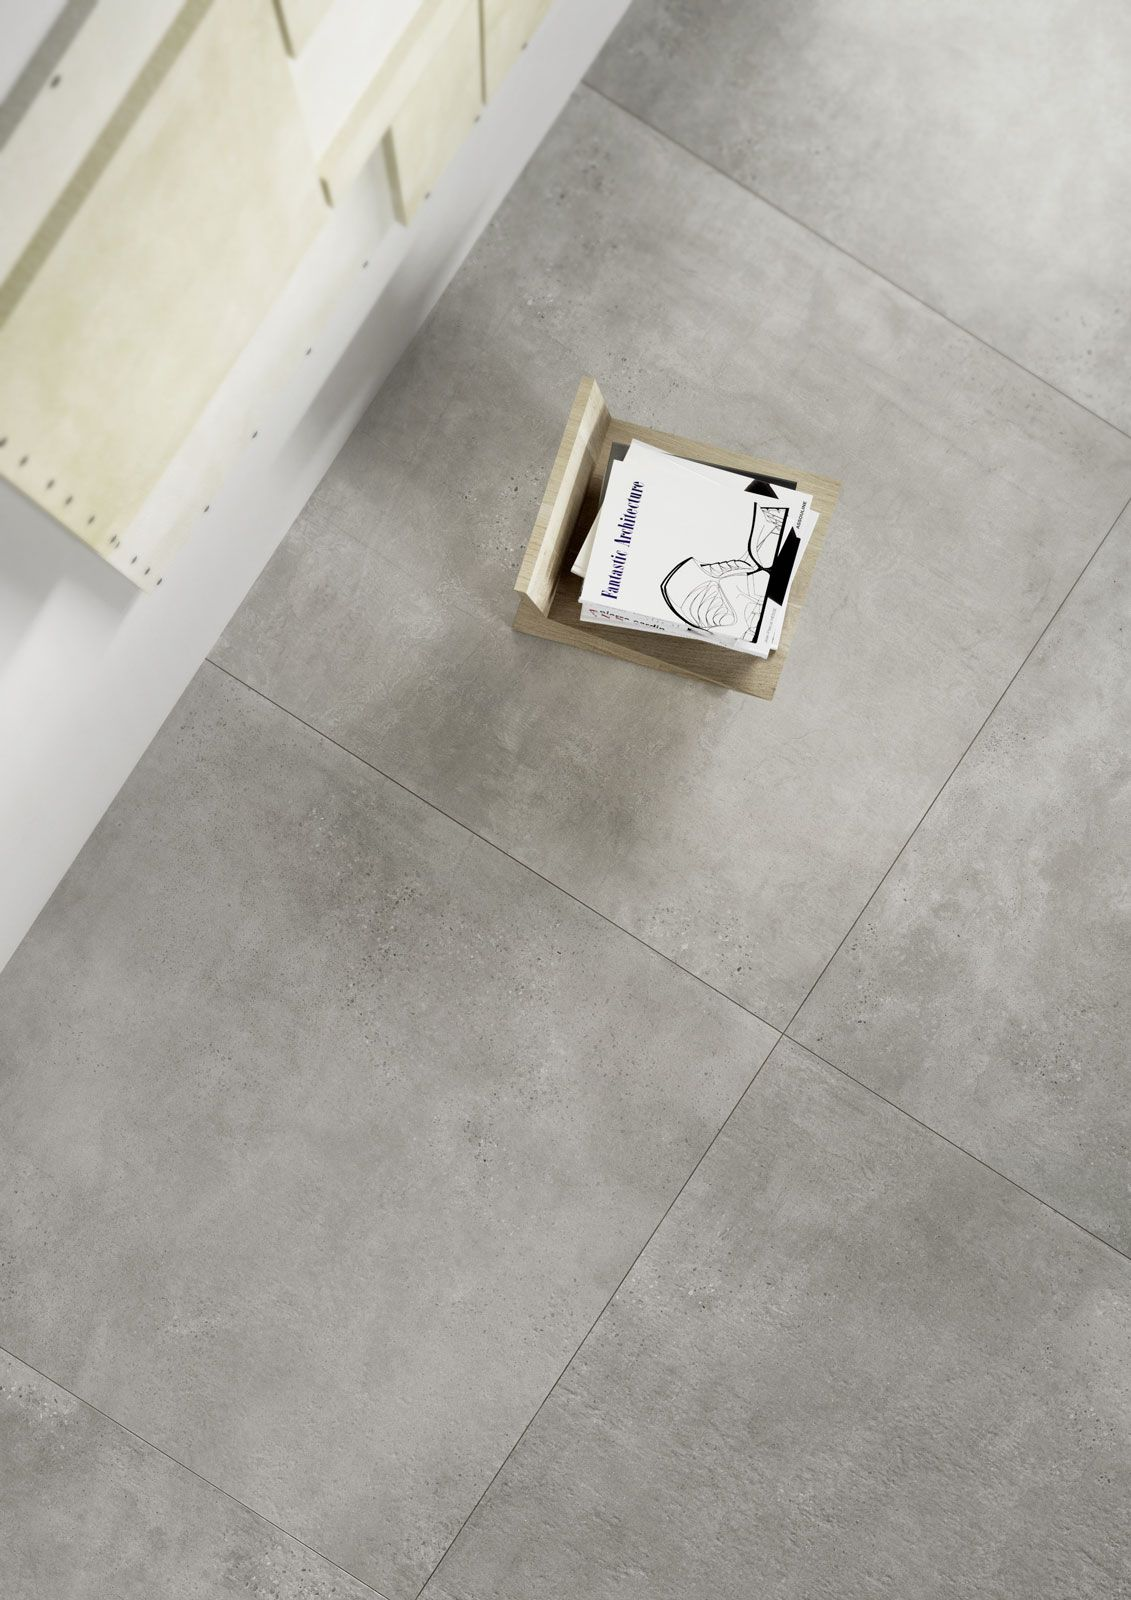 Xlstreet big size tiles marazzi casita ideas pinterest xlstreet big size tiles marazzi concrete floorstile dailygadgetfo Gallery